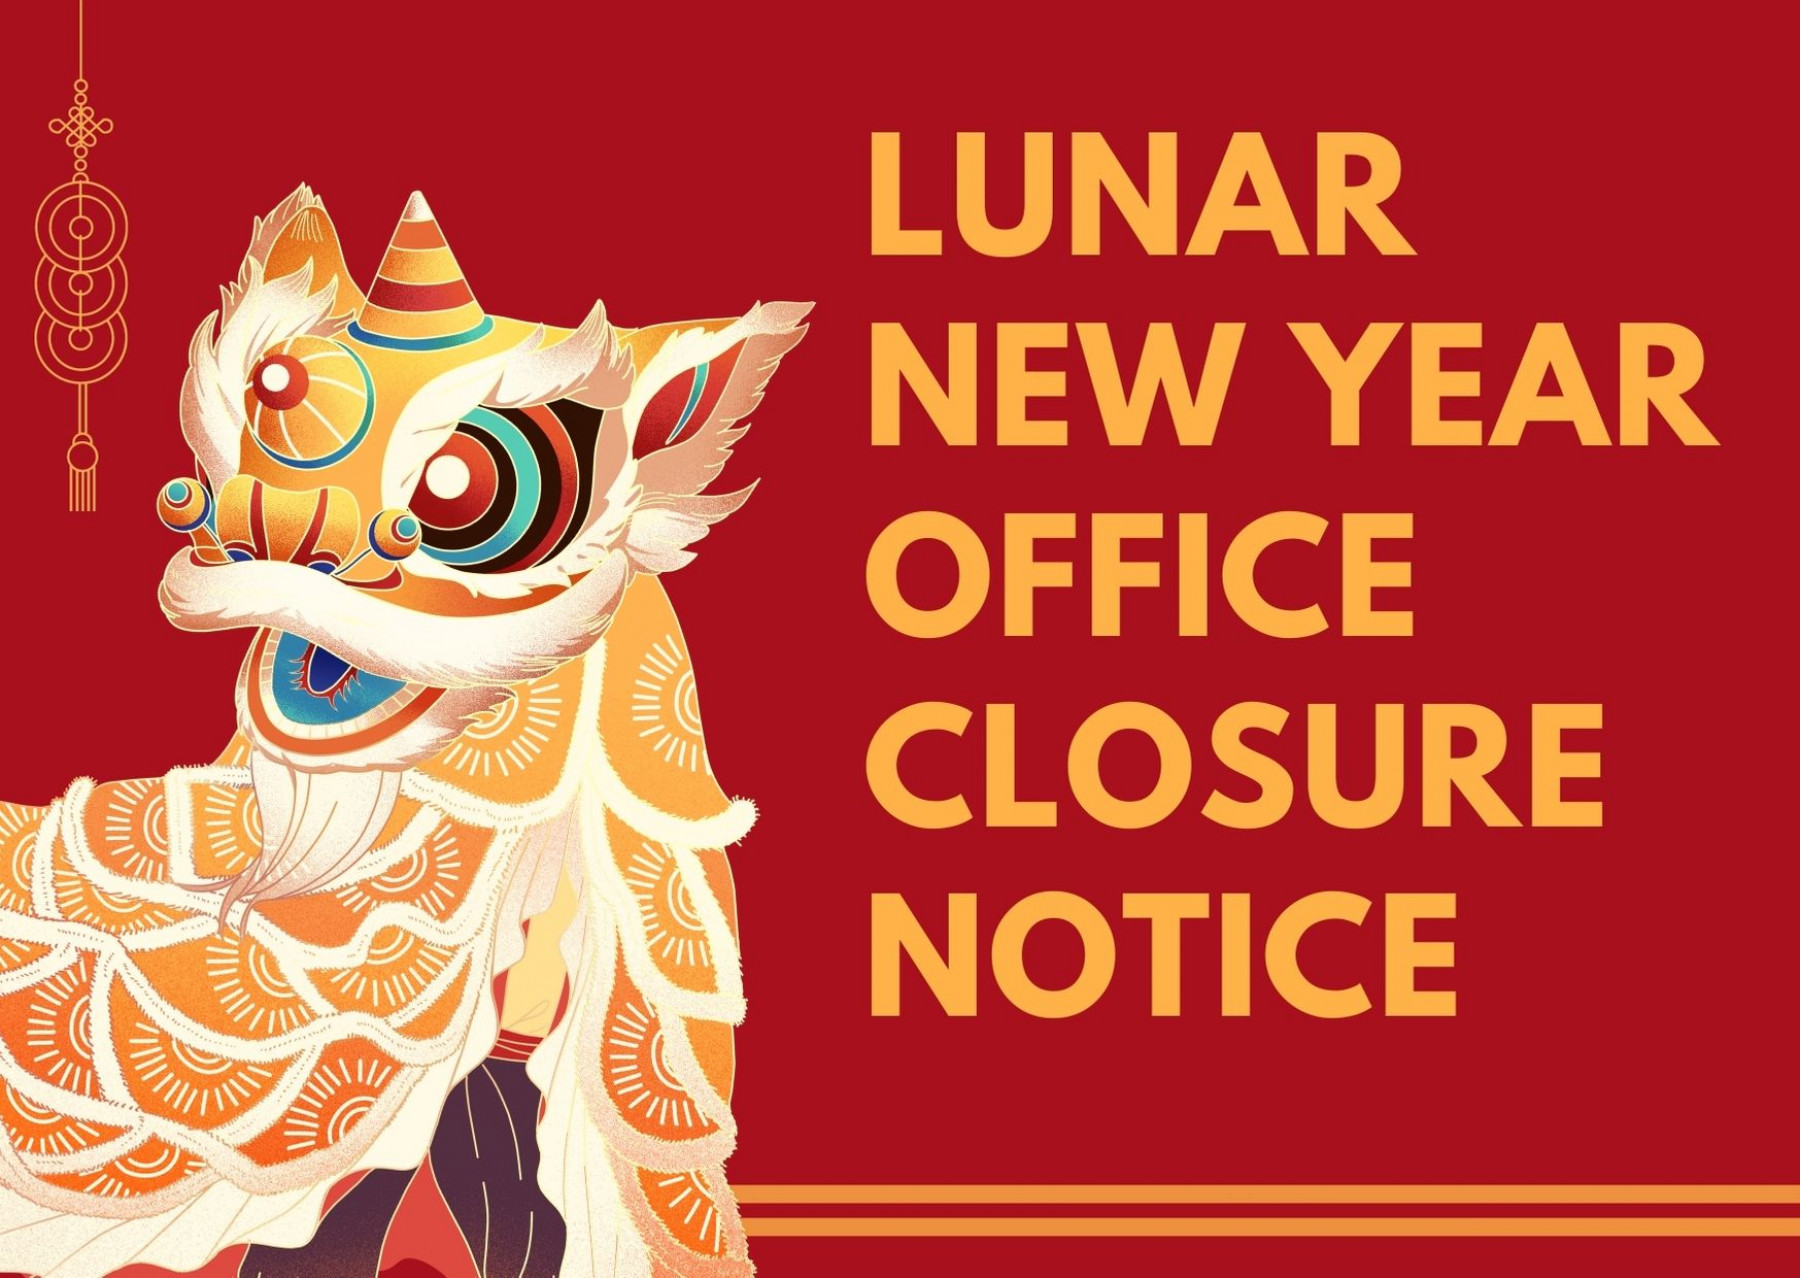 Play Concept - Notice of Office Closure for Lunar New Year - 1